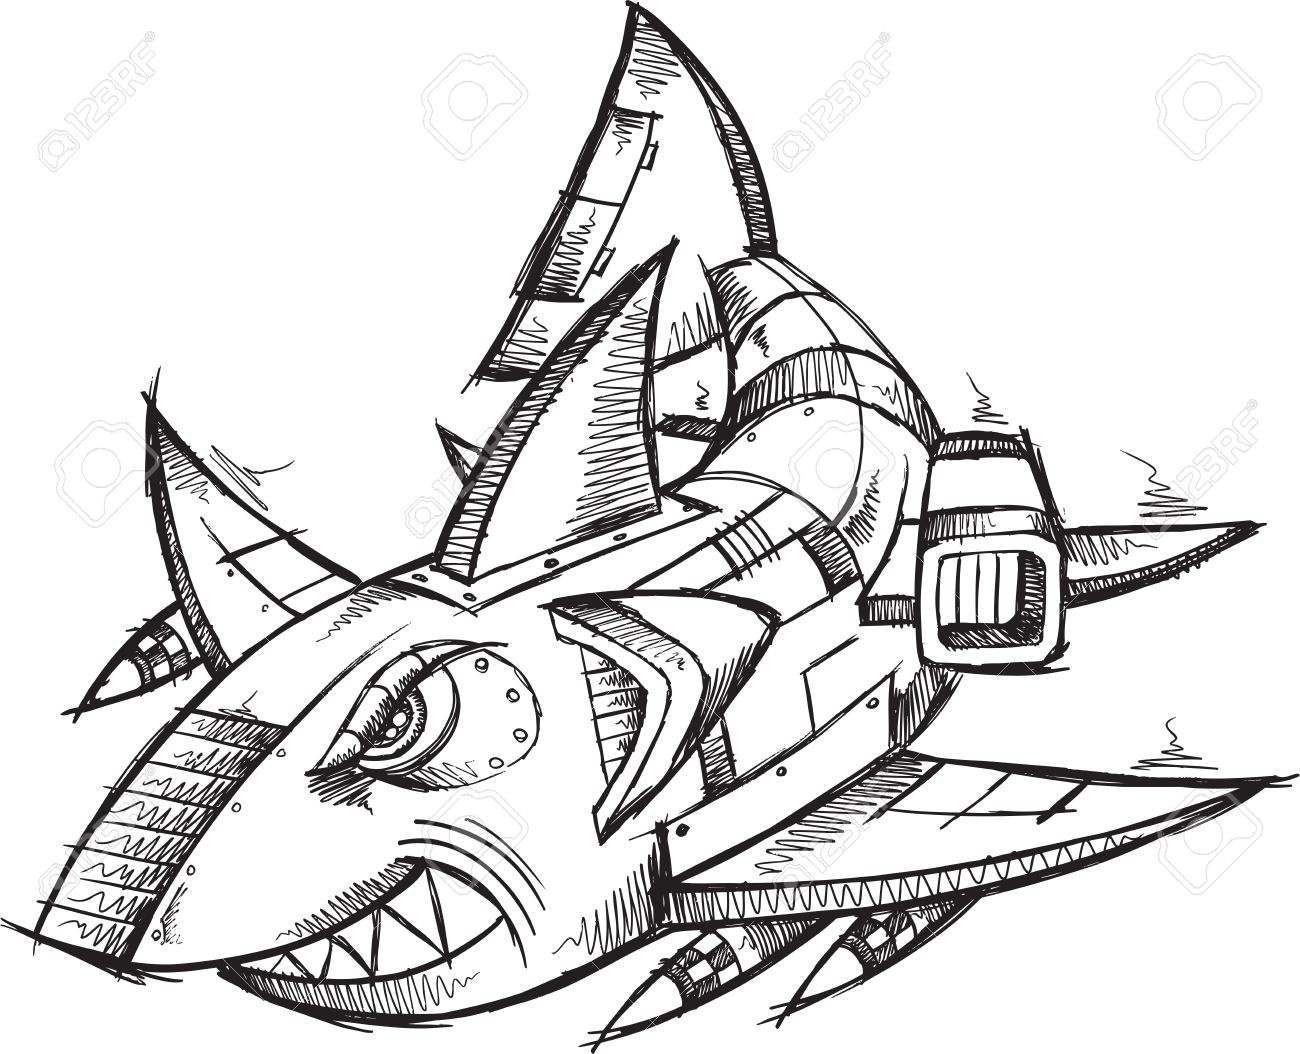 Cool Shark Drawing at GetDrawings.com | Free for personal use Cool ...